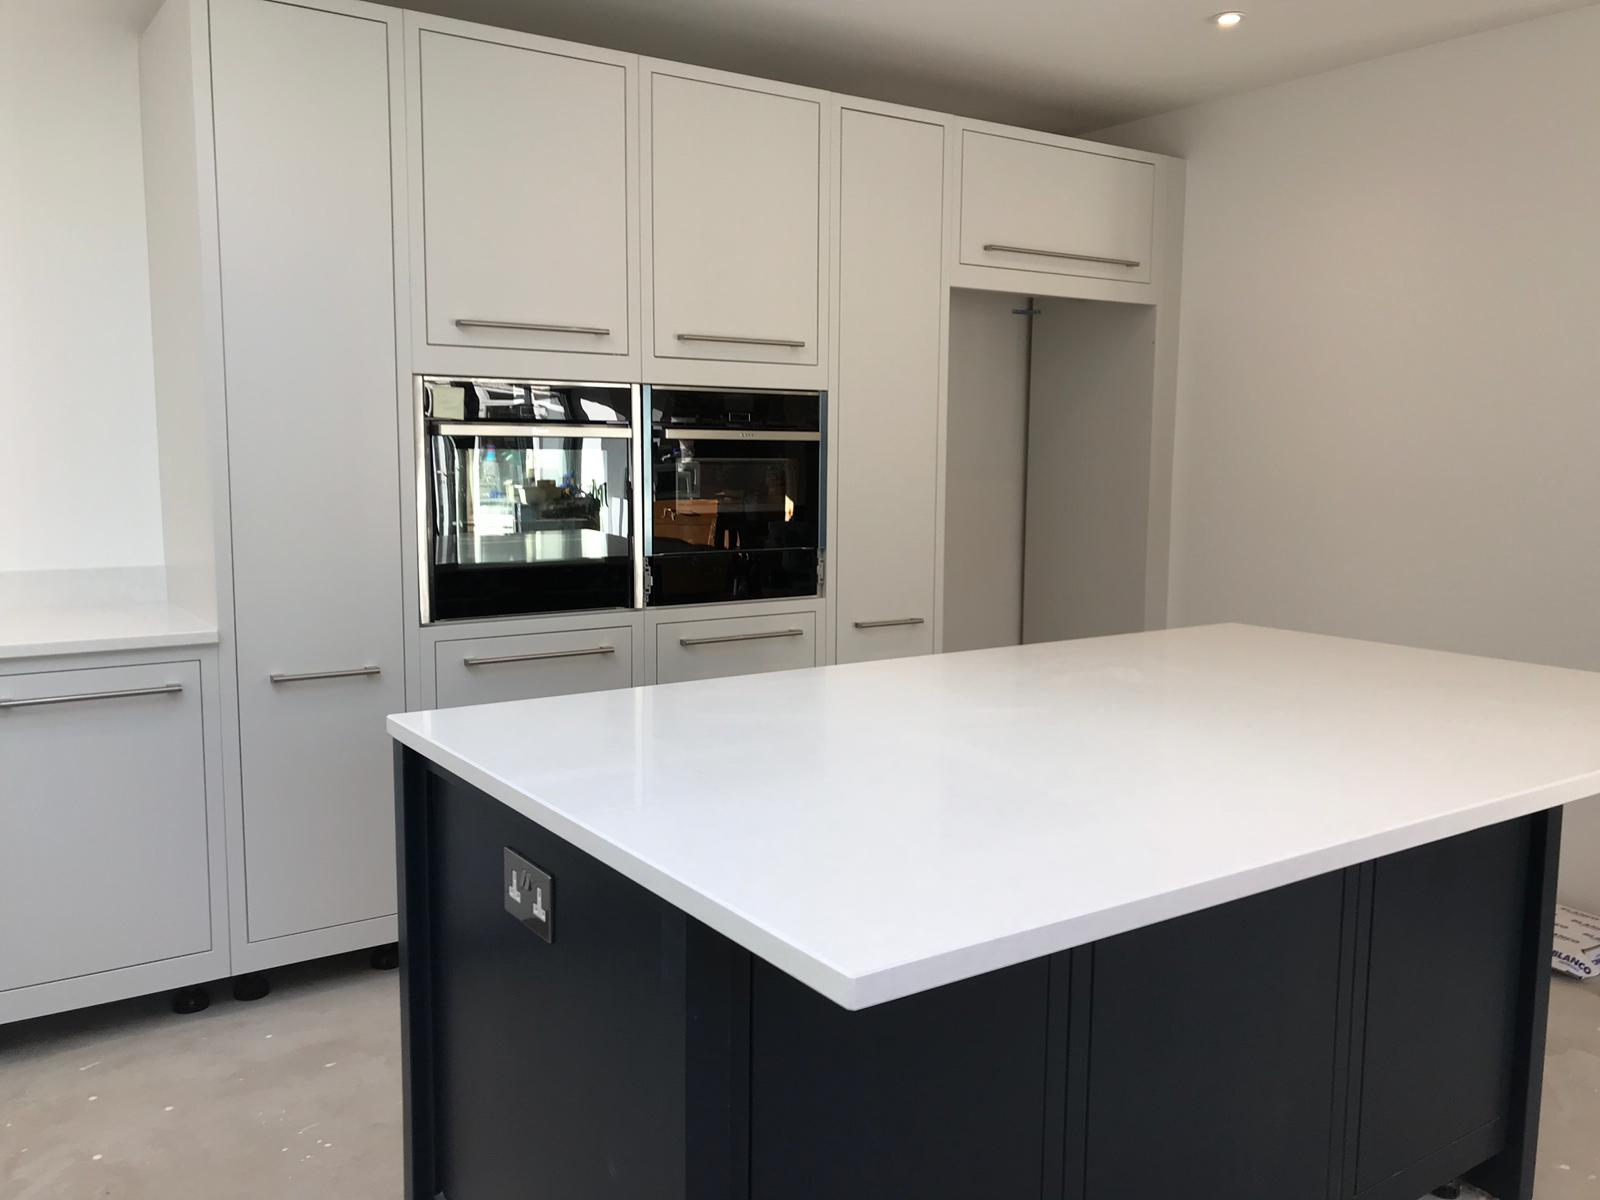 Kitchen of the week… Located in Watford, Hertfordshire, showcasing the Bianco Marmo Suprema